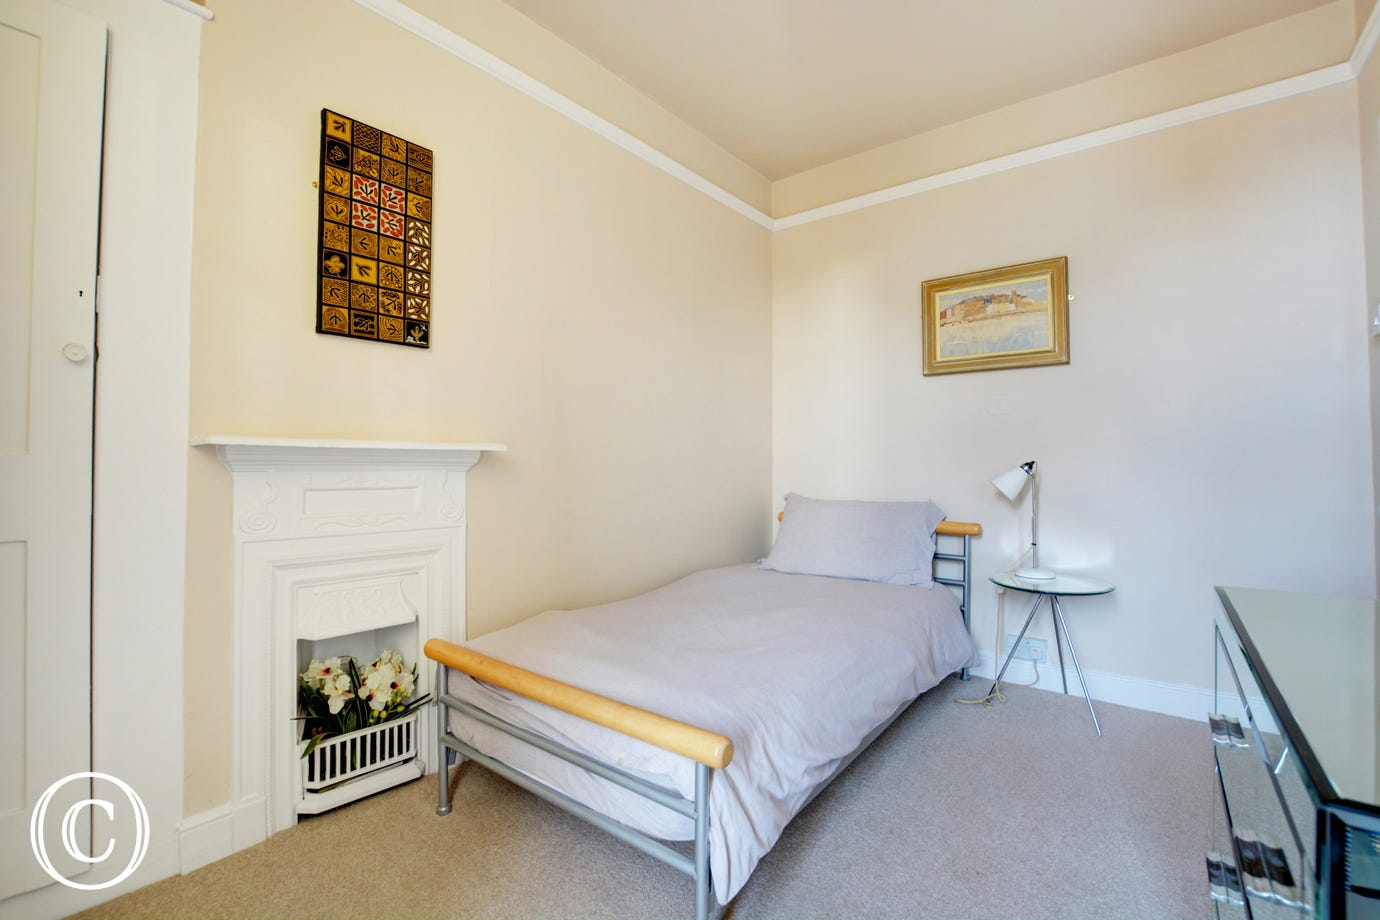 A single bedded room with feature fireplace and stylish fittings.